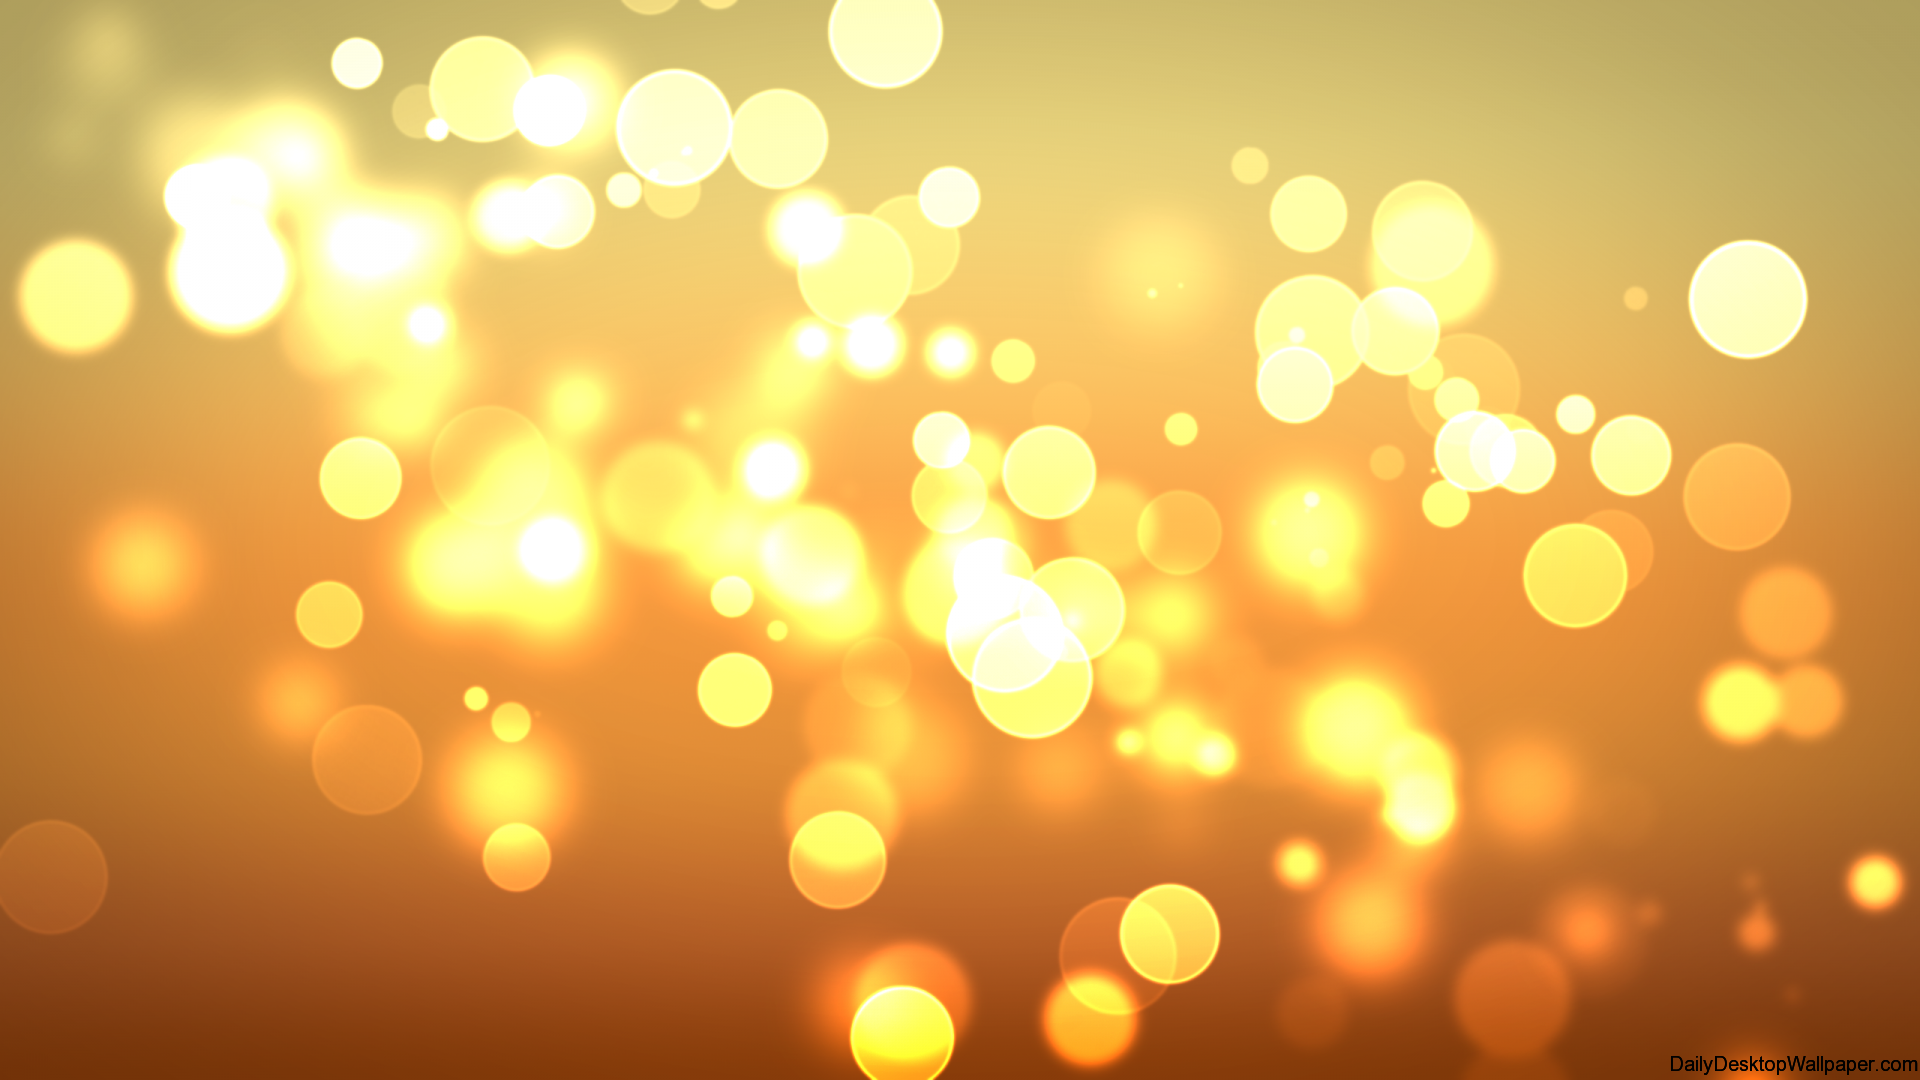 Light-Speckle-Wallpaper